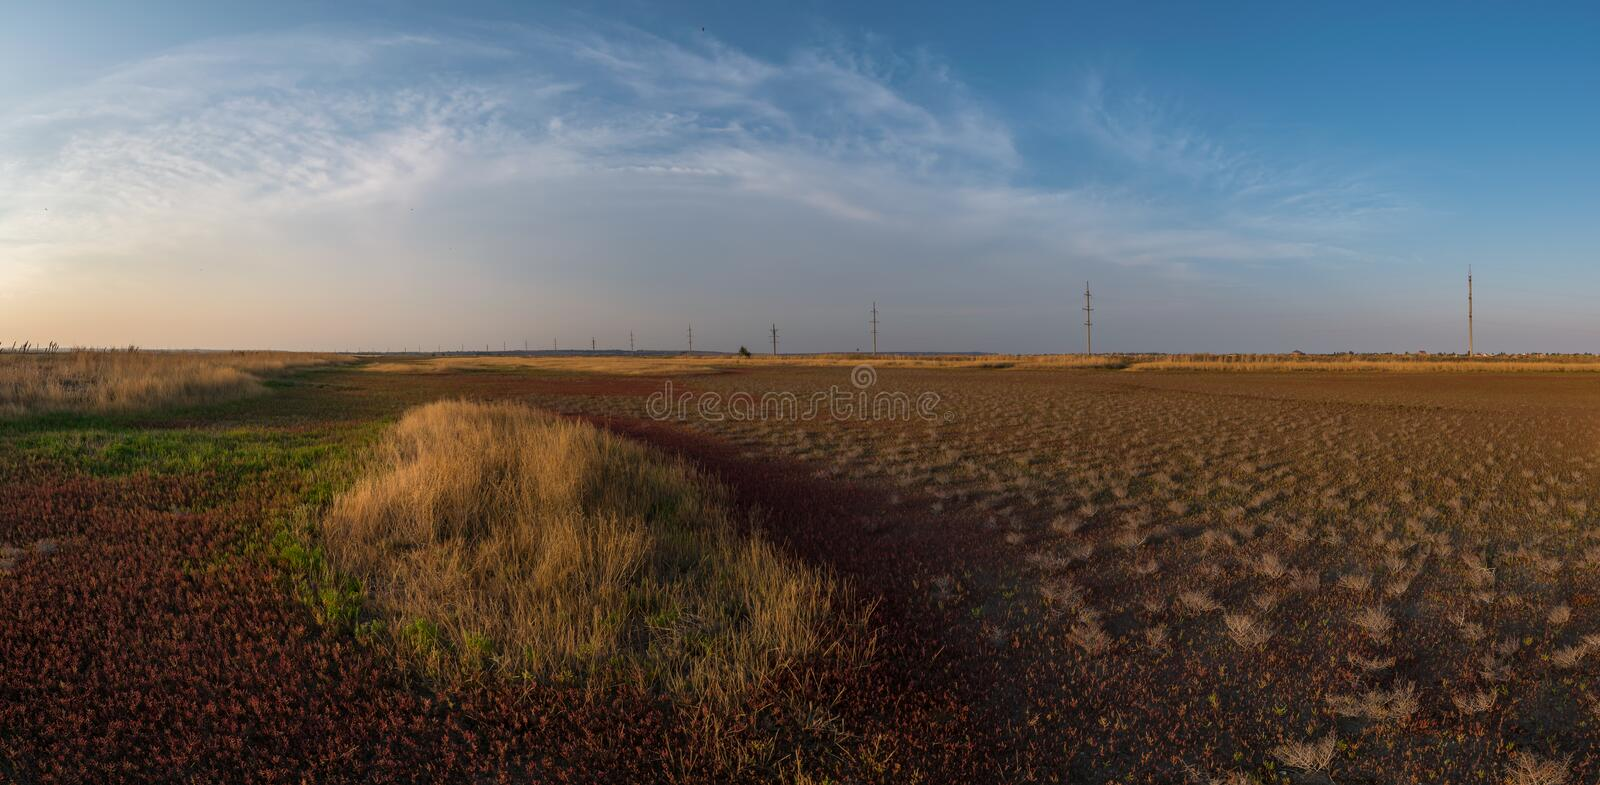 Landscape with dry land and young plants royalty free stock photography